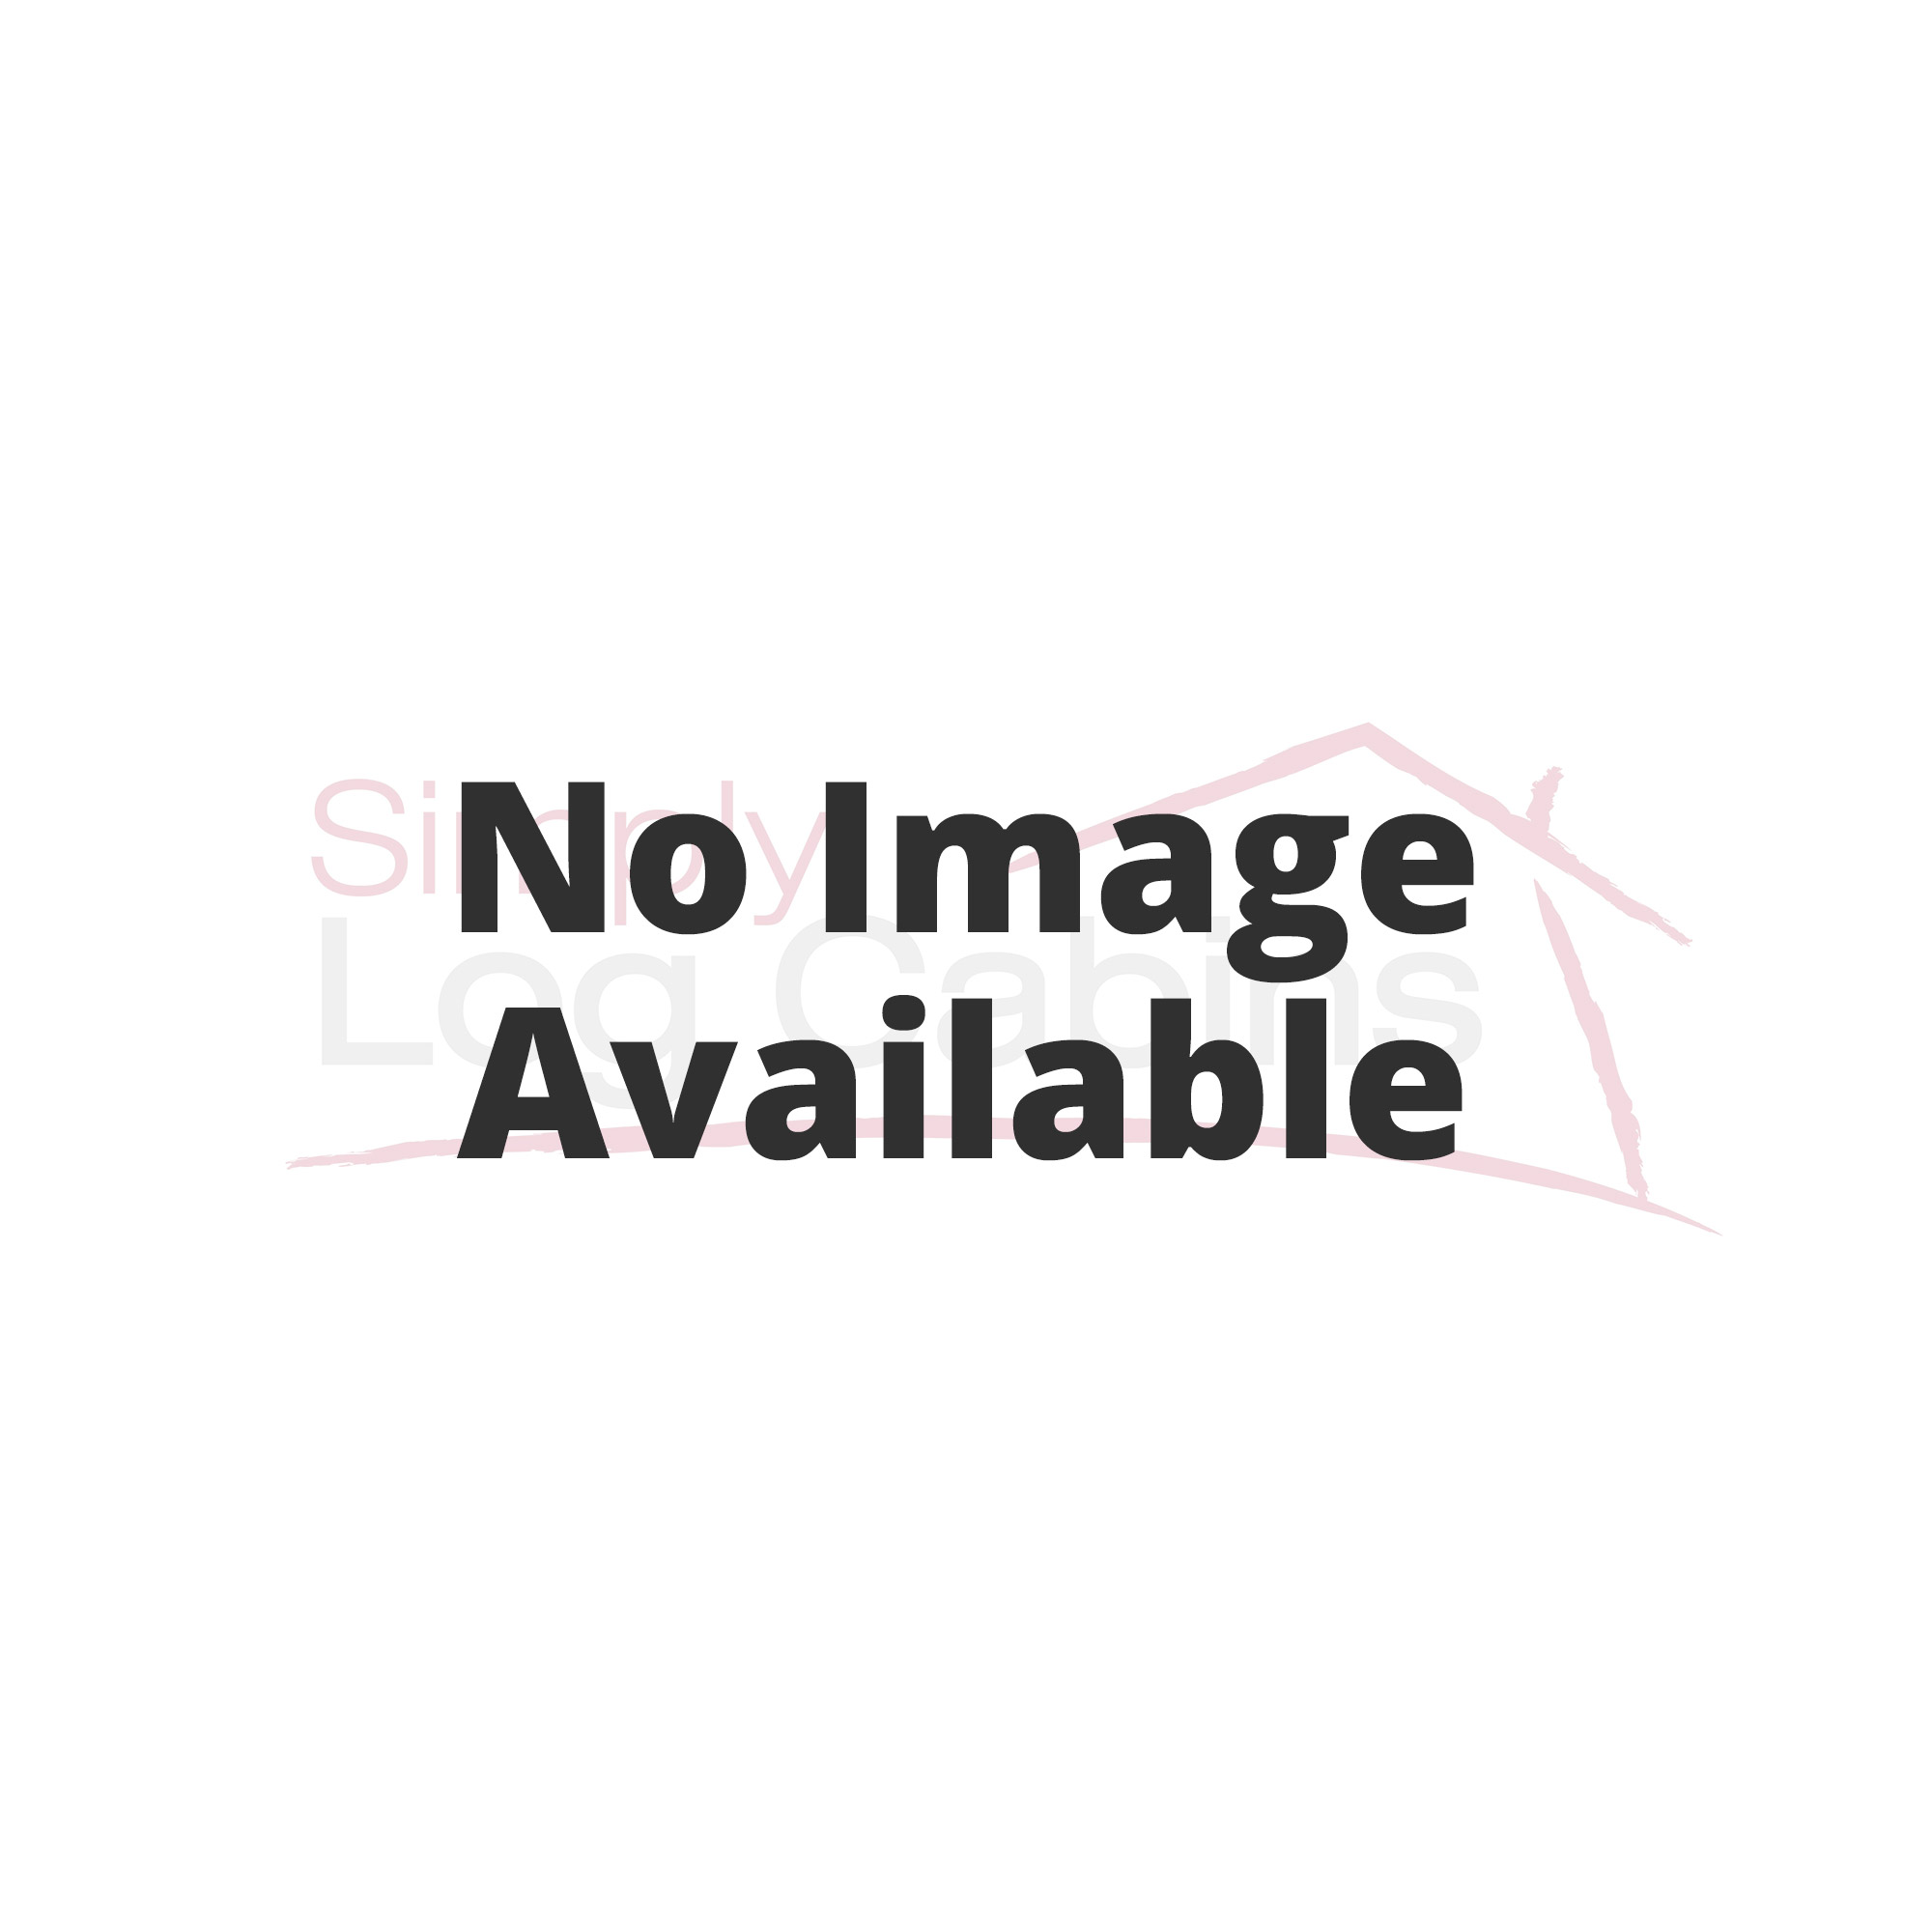 Jagram Cotswold Canopy with Tiled or Canvas Roof